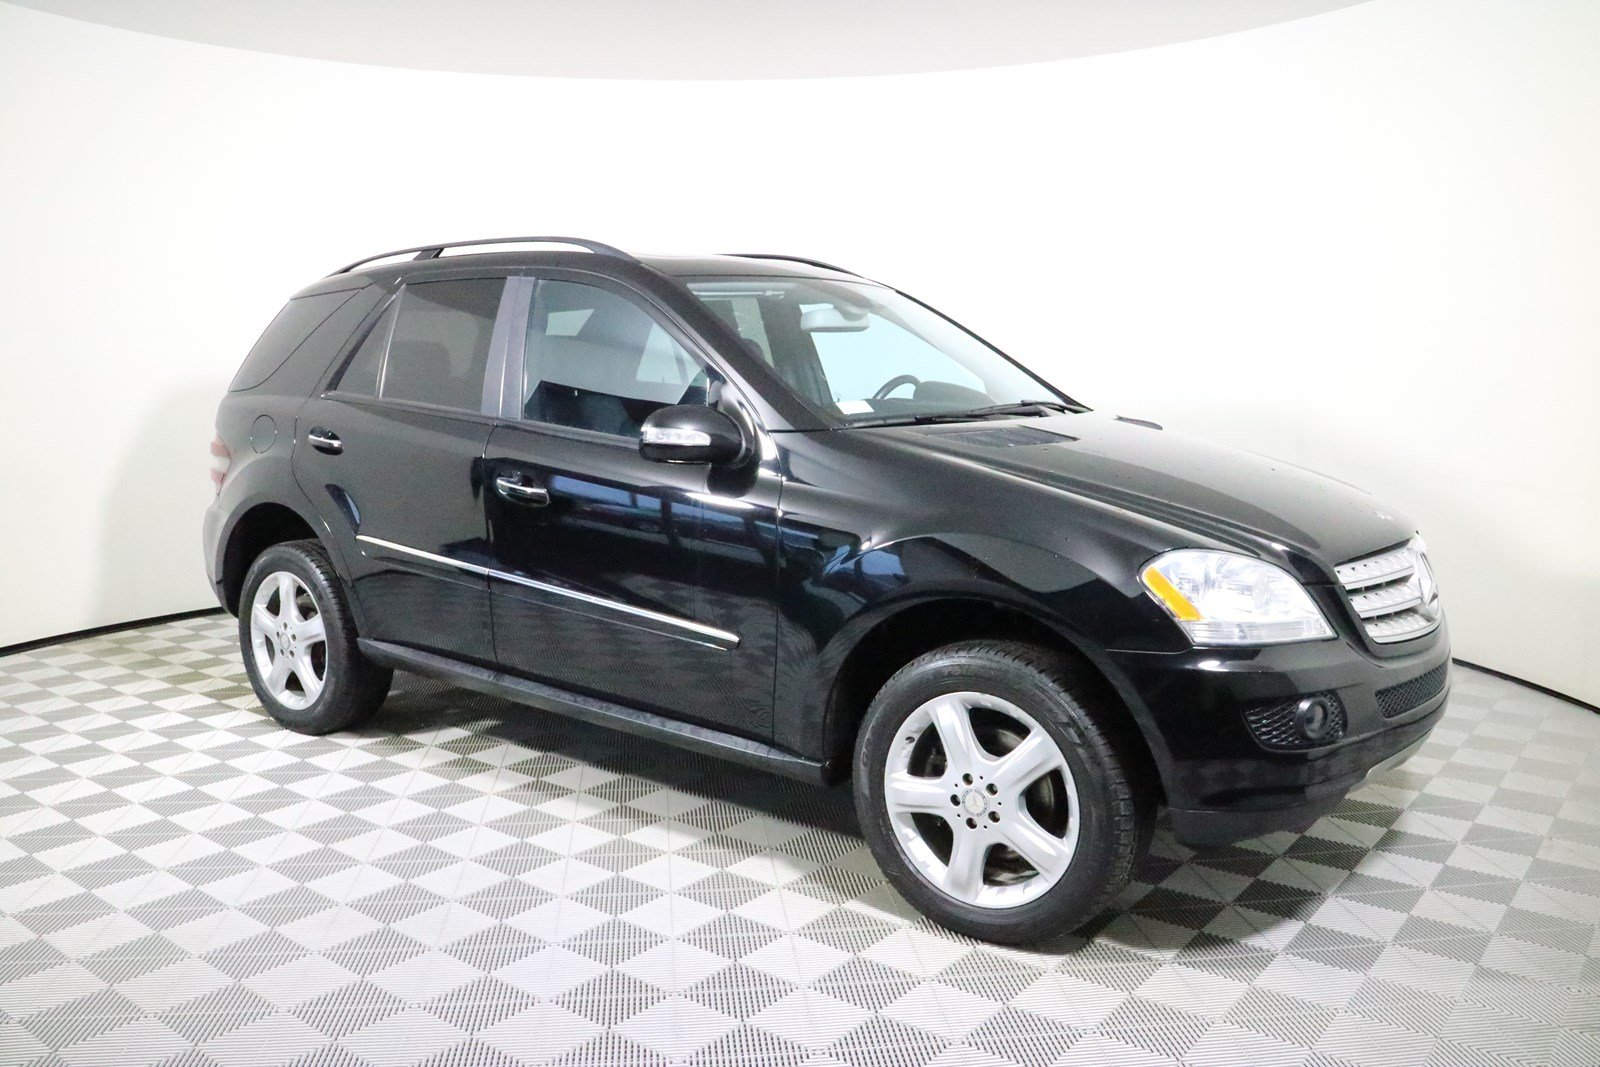 Pre owned 2008 mercedes benz m class ml 320 suv in for Astorg motor company parkersburg wv